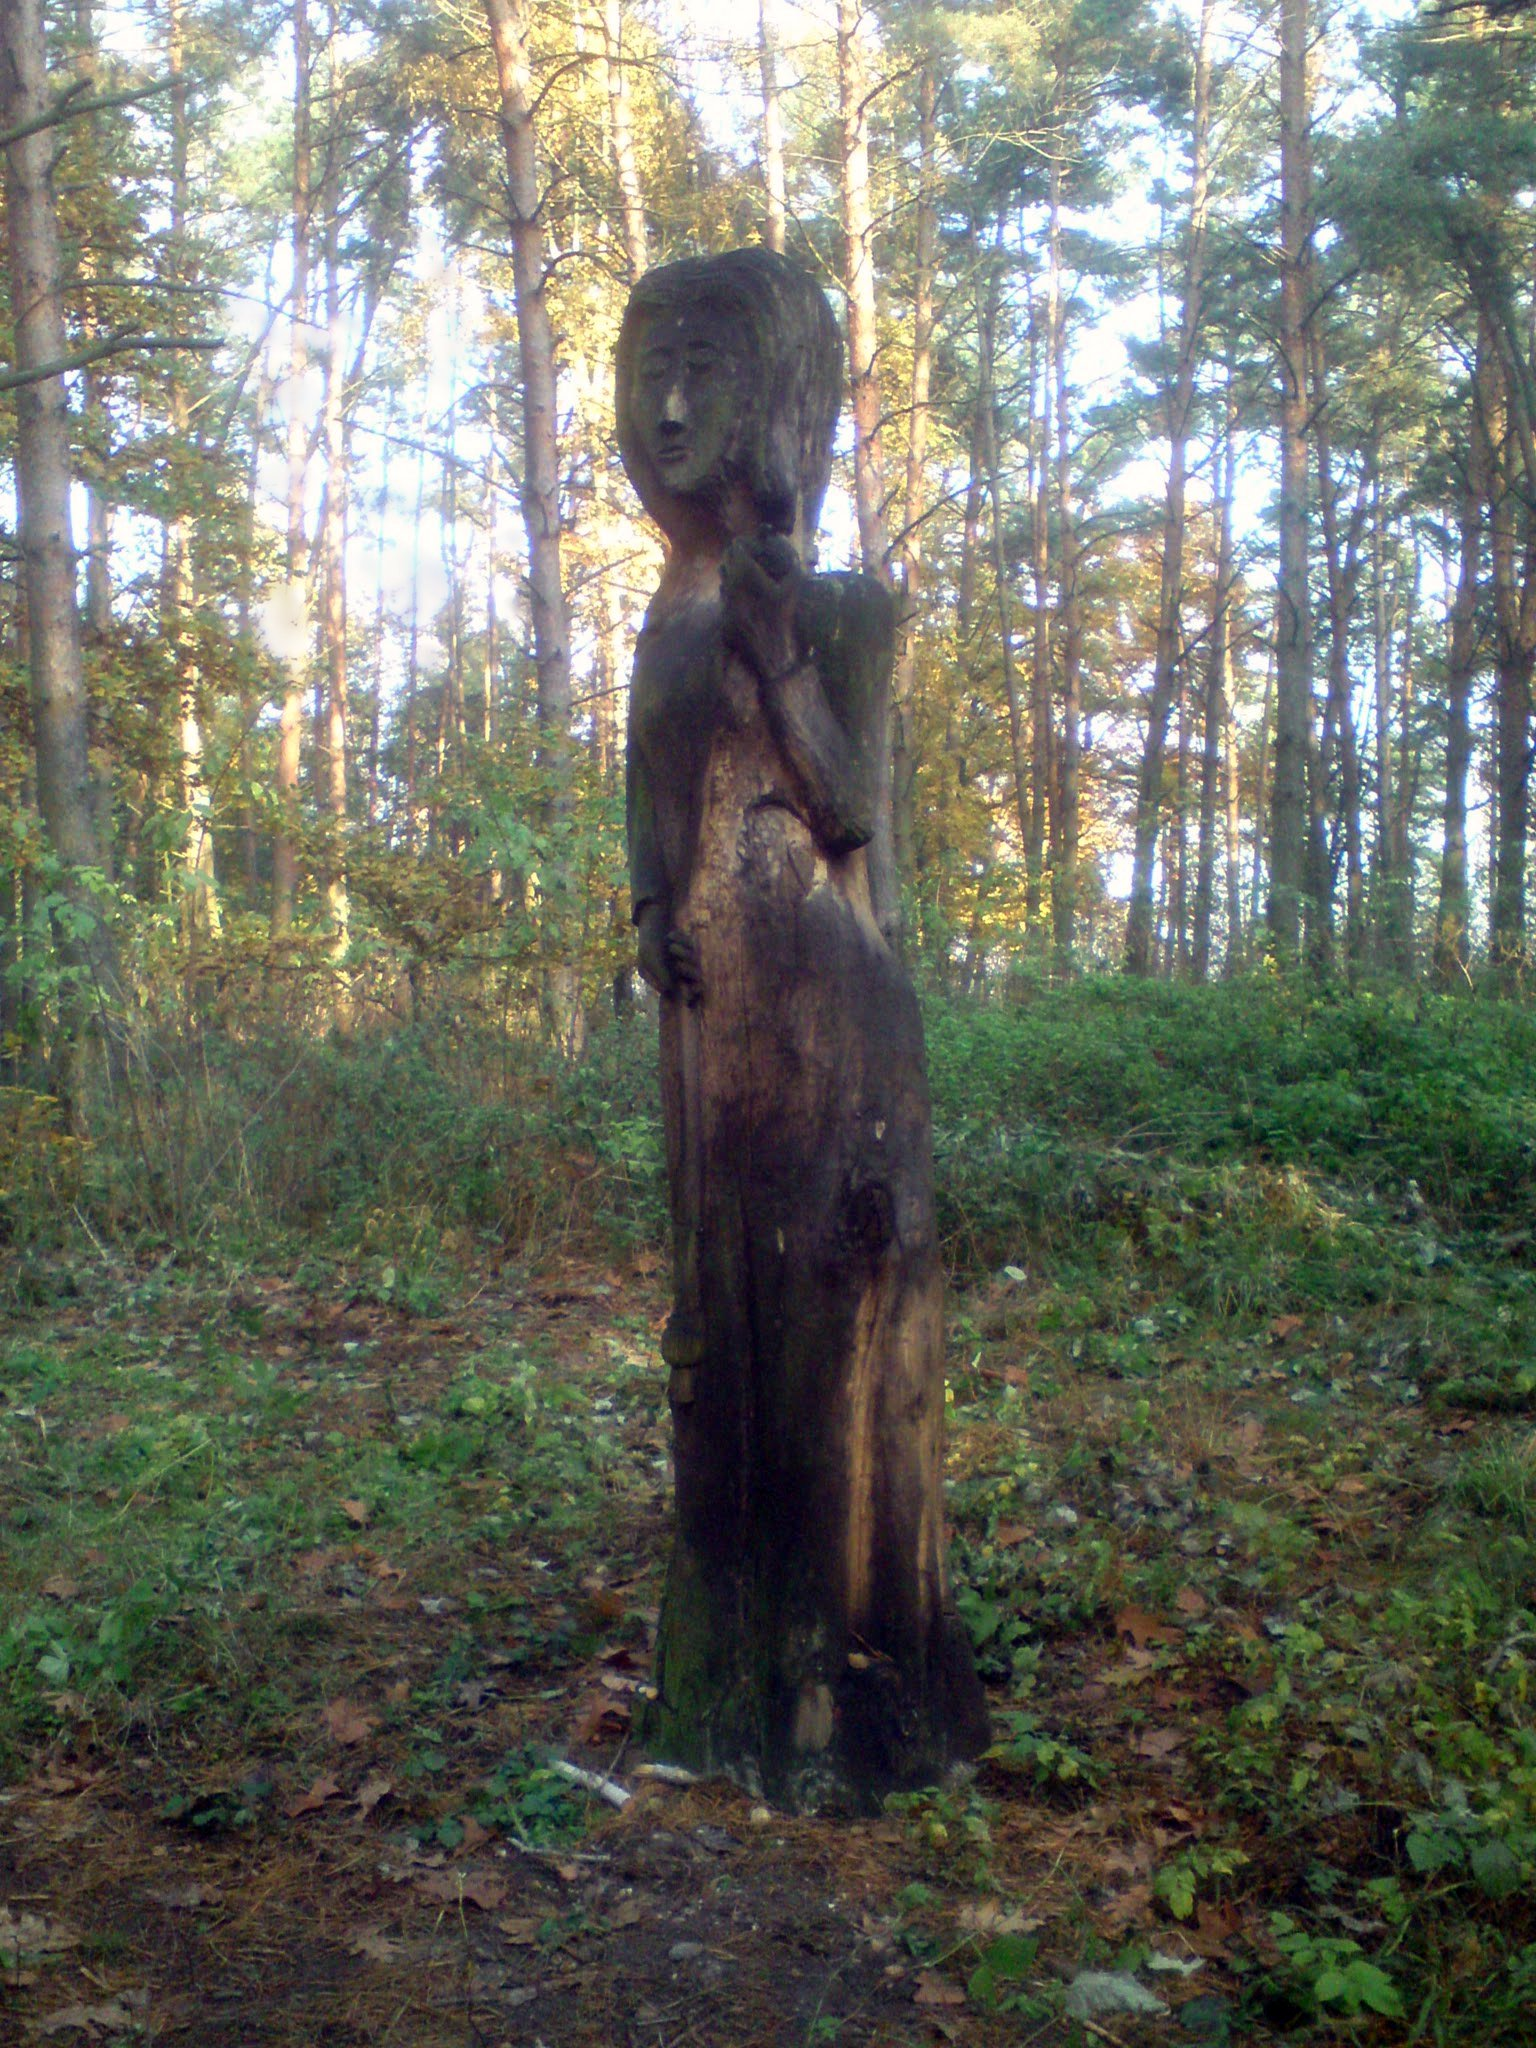 Modern wooden statue of Mokosh in the Czech Republic.